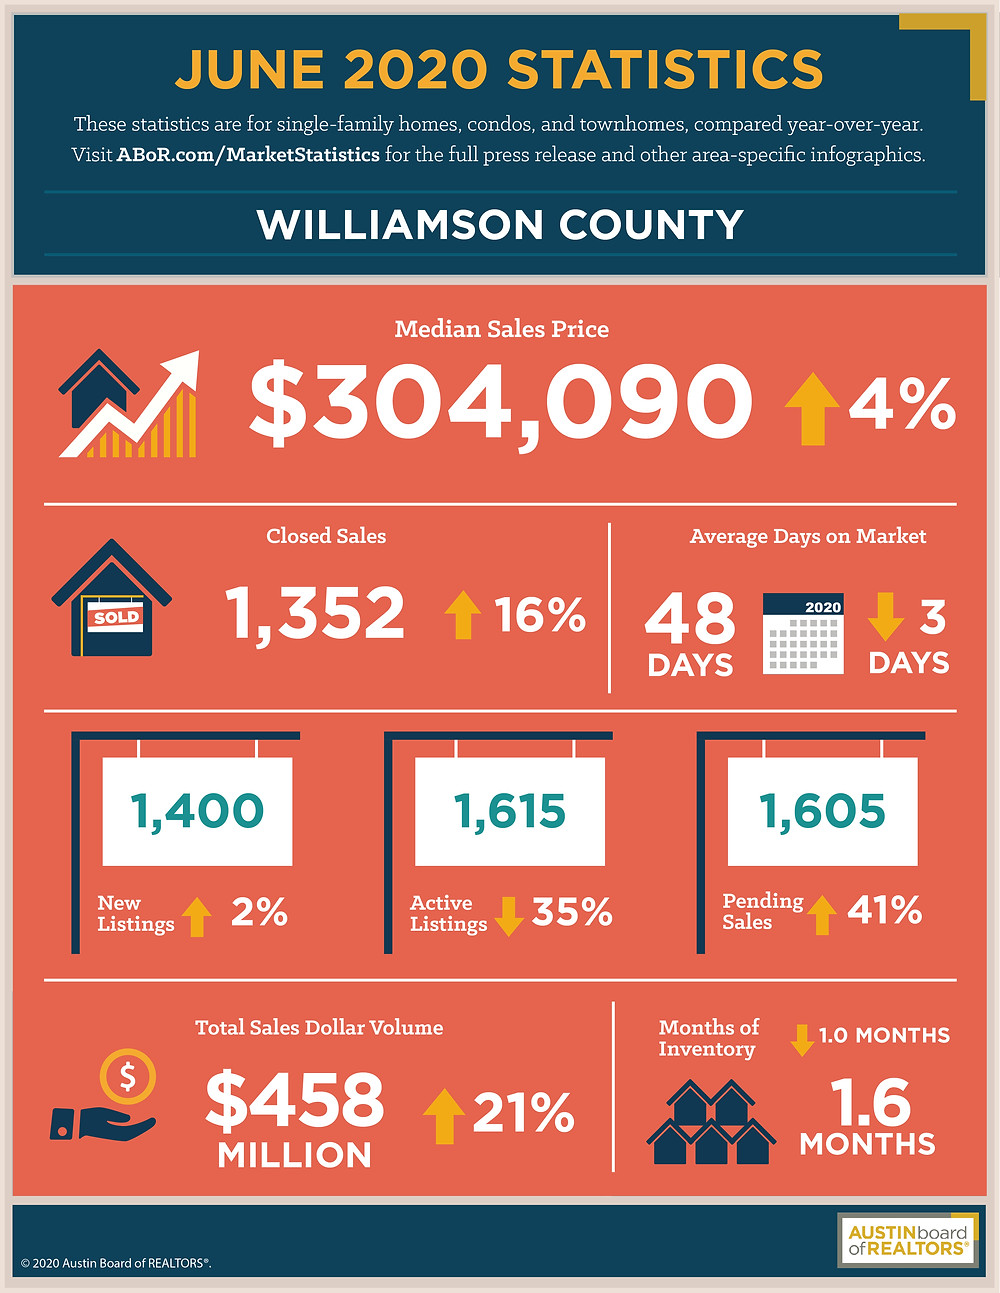 June 2020 Housing Statistics For Williamson County Texas